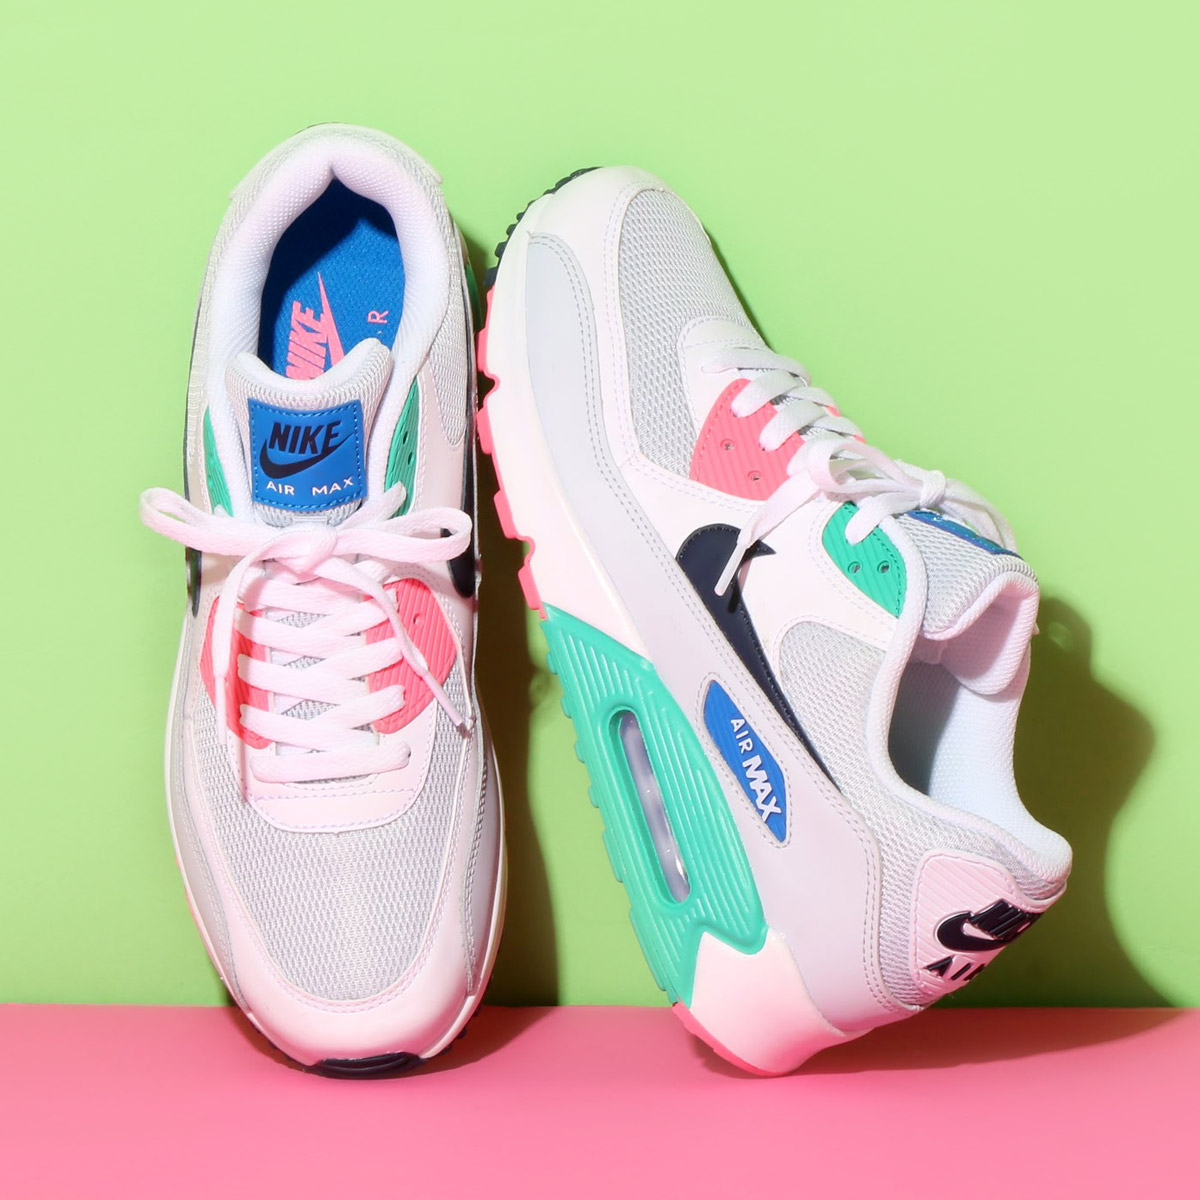 best nike air max 90 blue pink cda4e 0f724